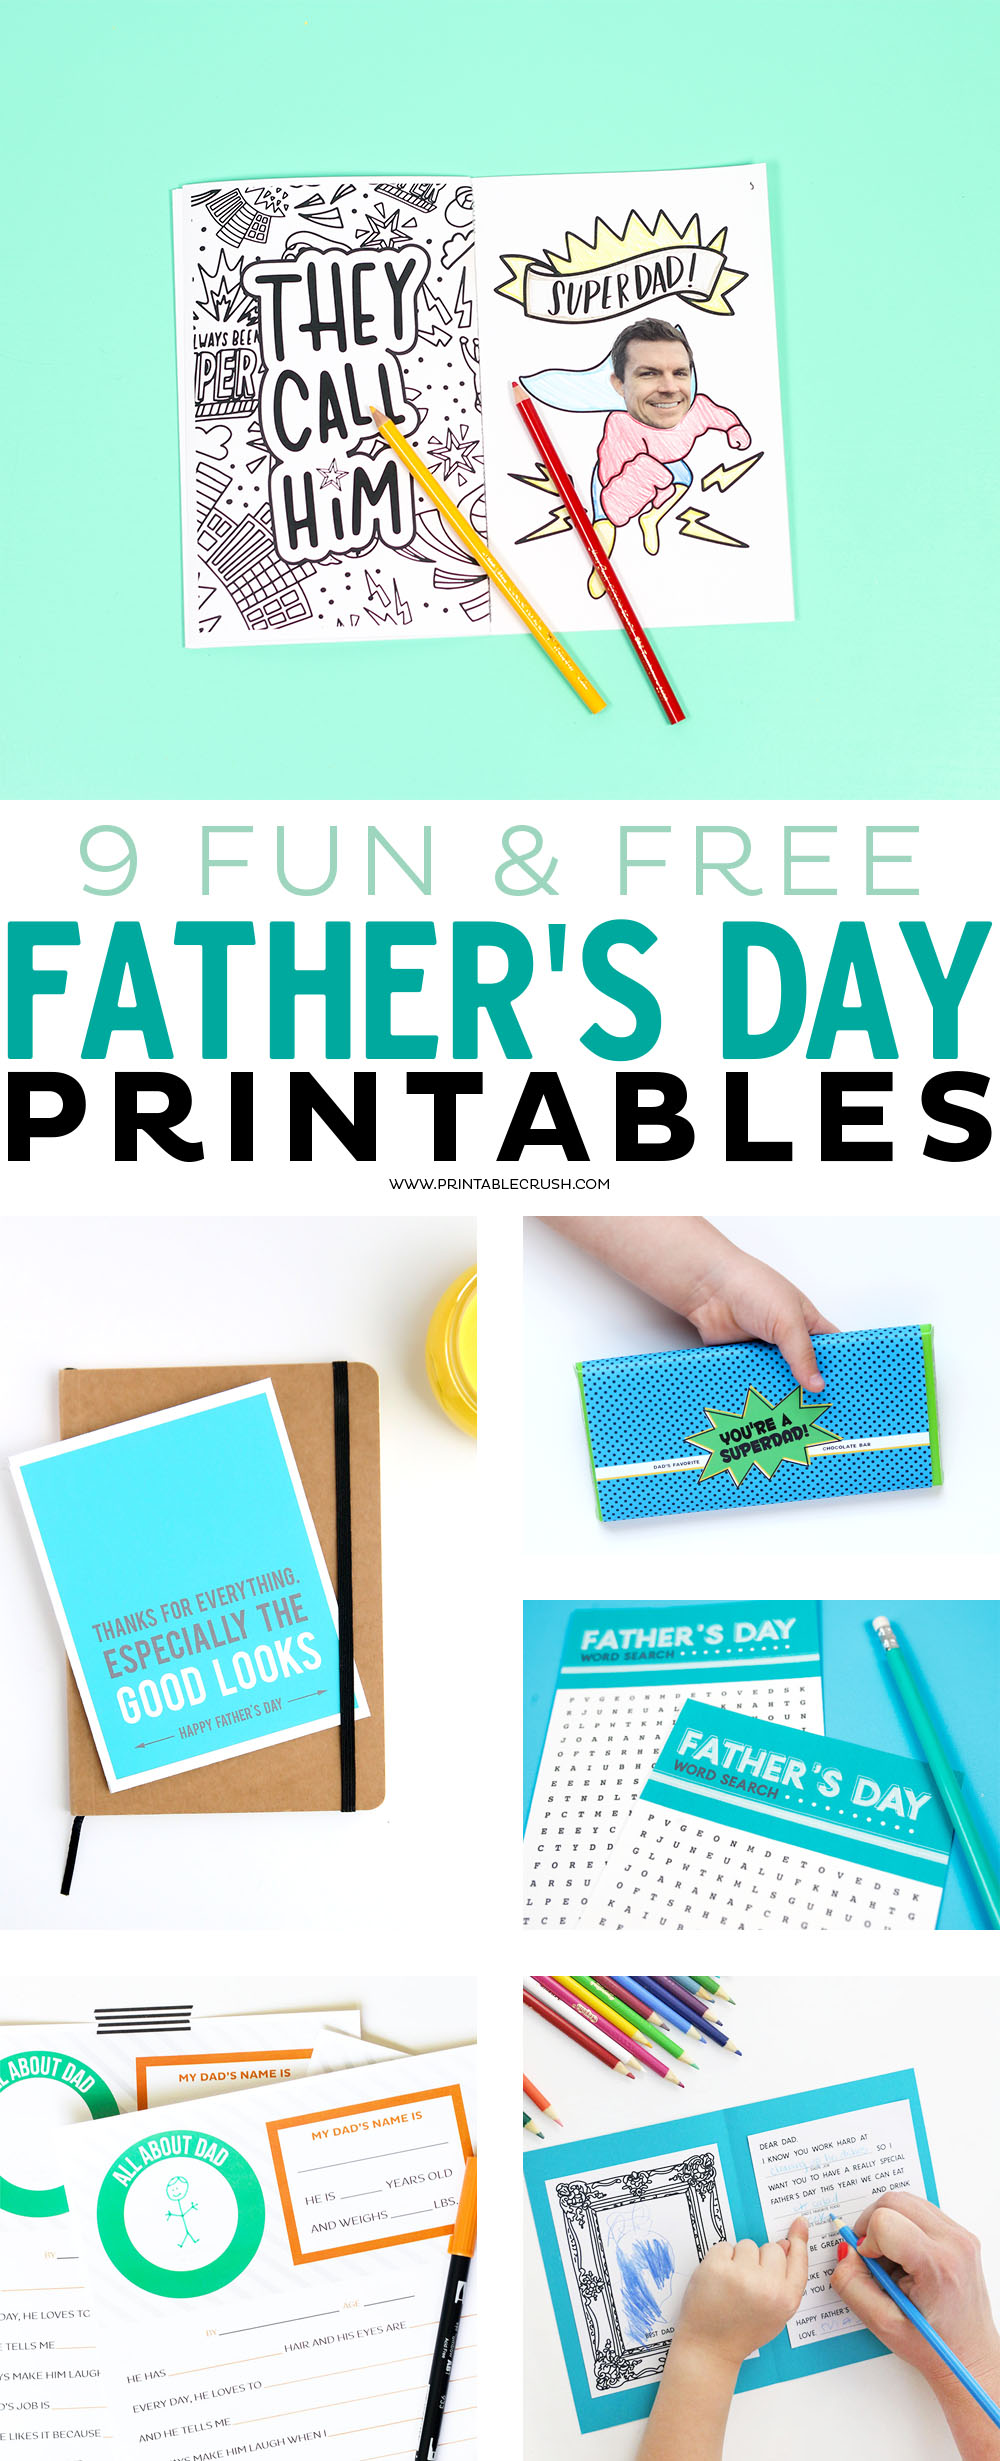 Treat dad with something fun with these 9 FREE Father's Day Printables! Includes father's day cards, questionnaires, candy bar wrappers, and more! via @printablecrush